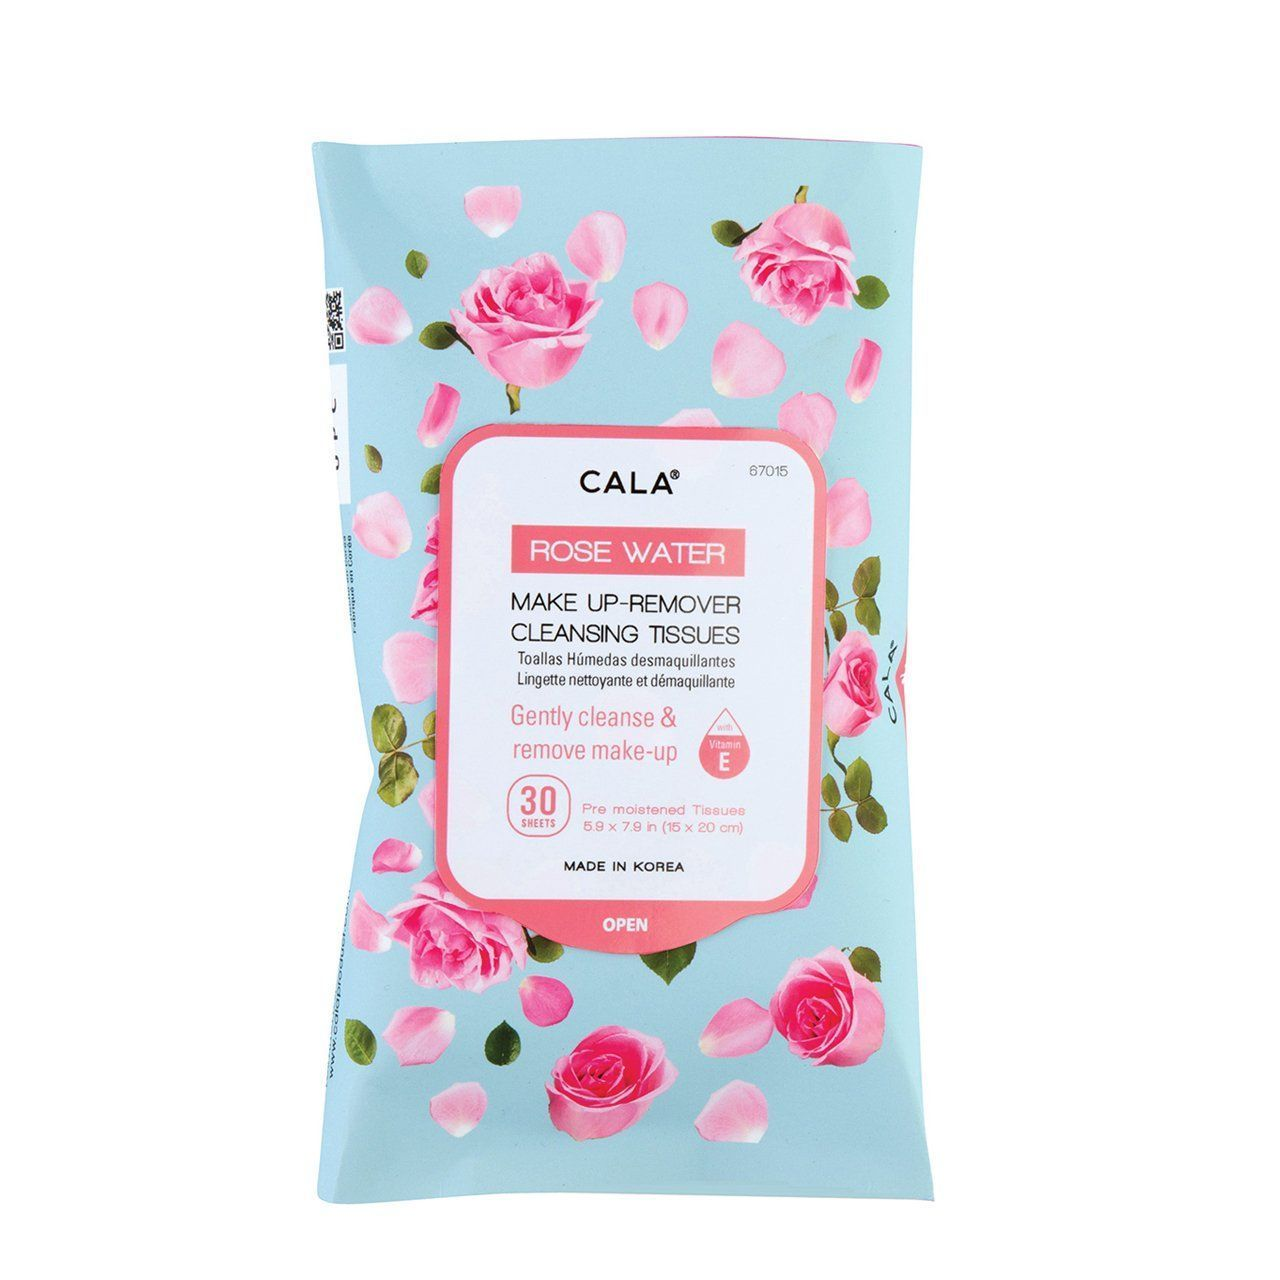 Cala Rose Water Makeup Remover Cleansing Tissues #67015 (6PK)